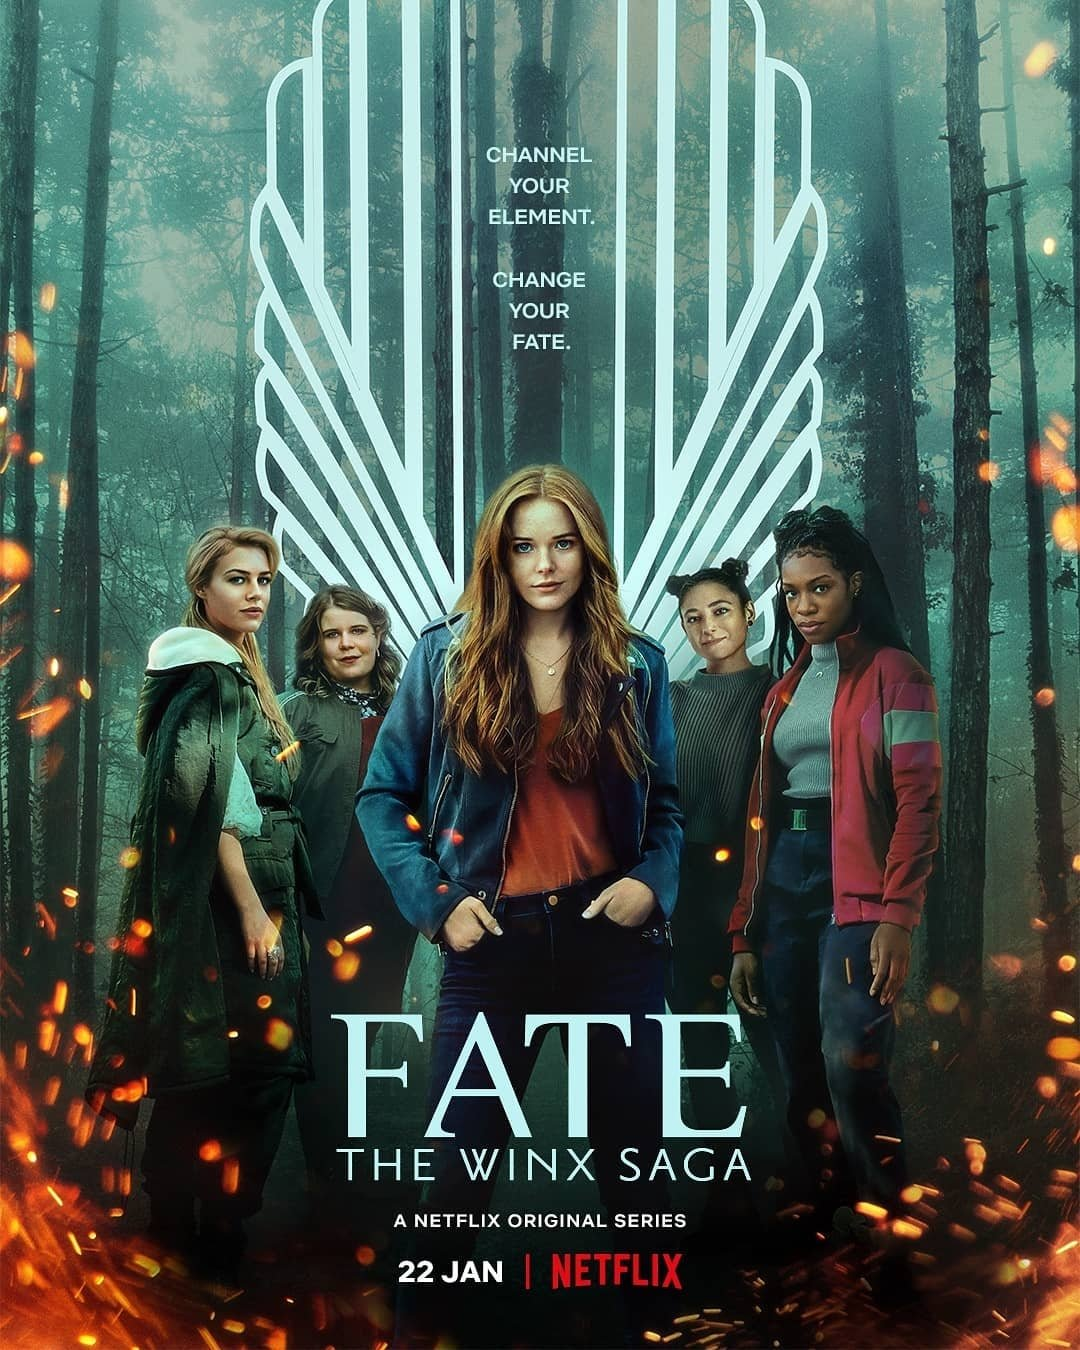 Fate The Winx Saga 2021 S01 Hindi Complete Netflix Web Series 955MB HDRip Download